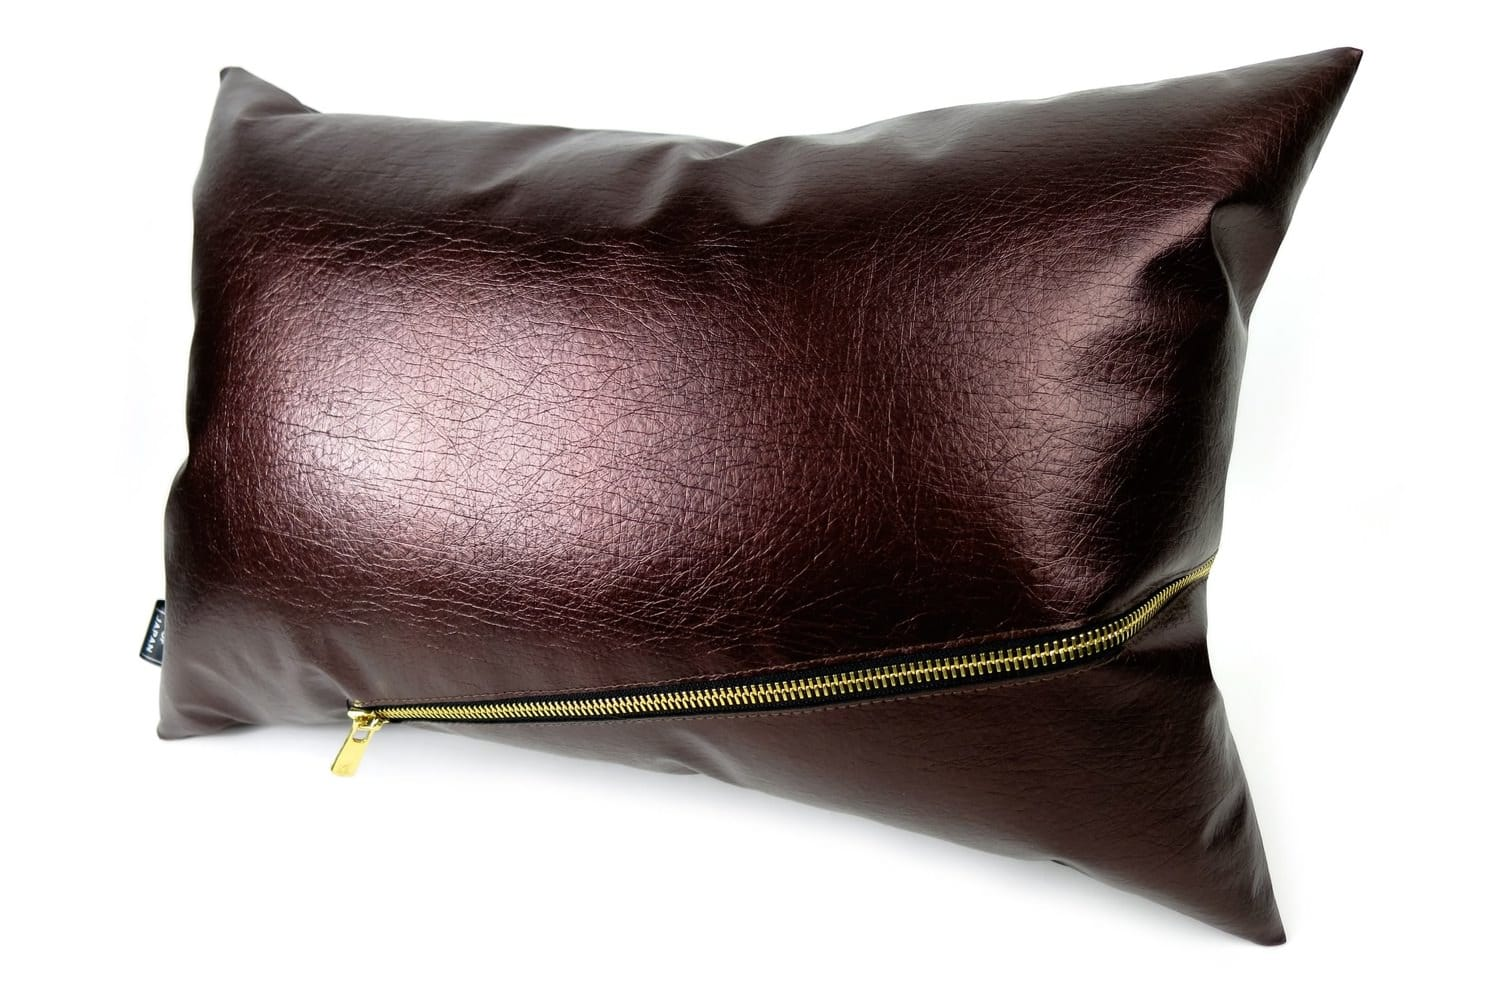 leather-wine-5838